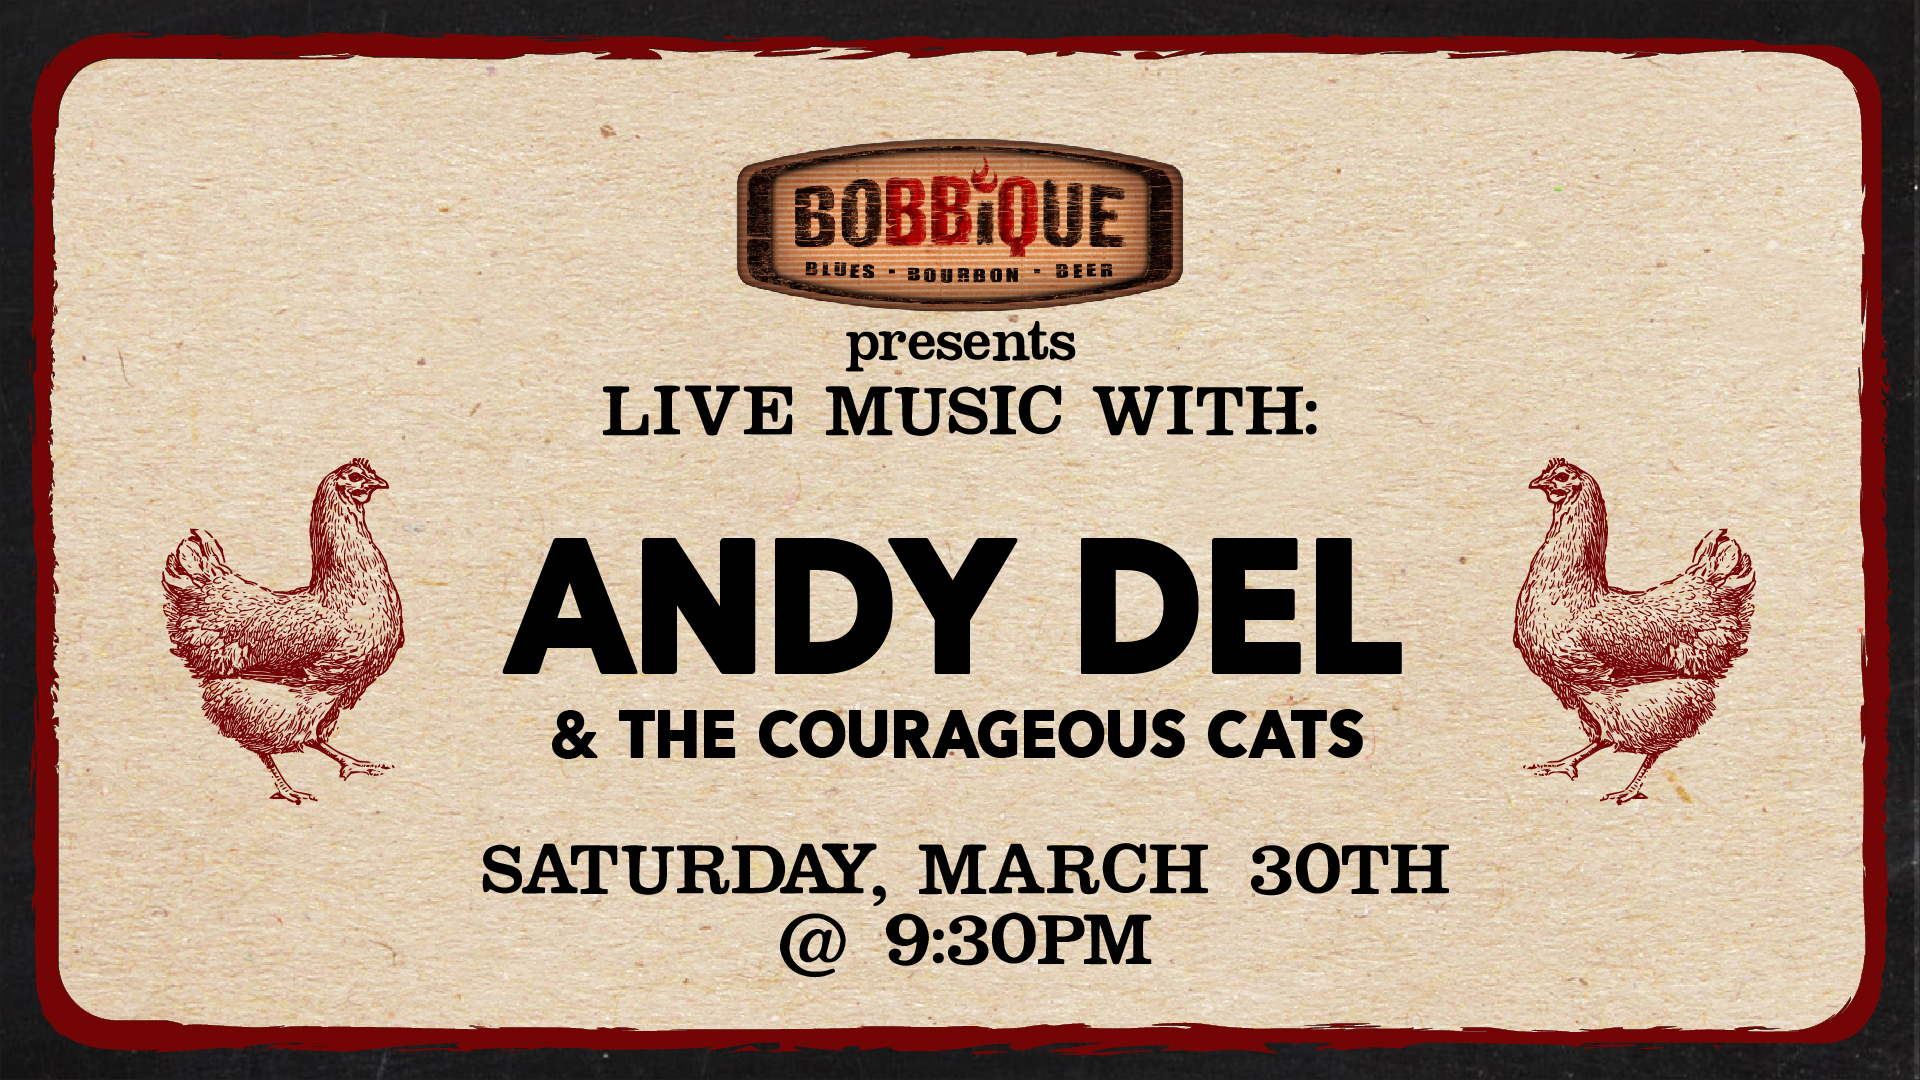 Andy Dell & The Courageous Cats